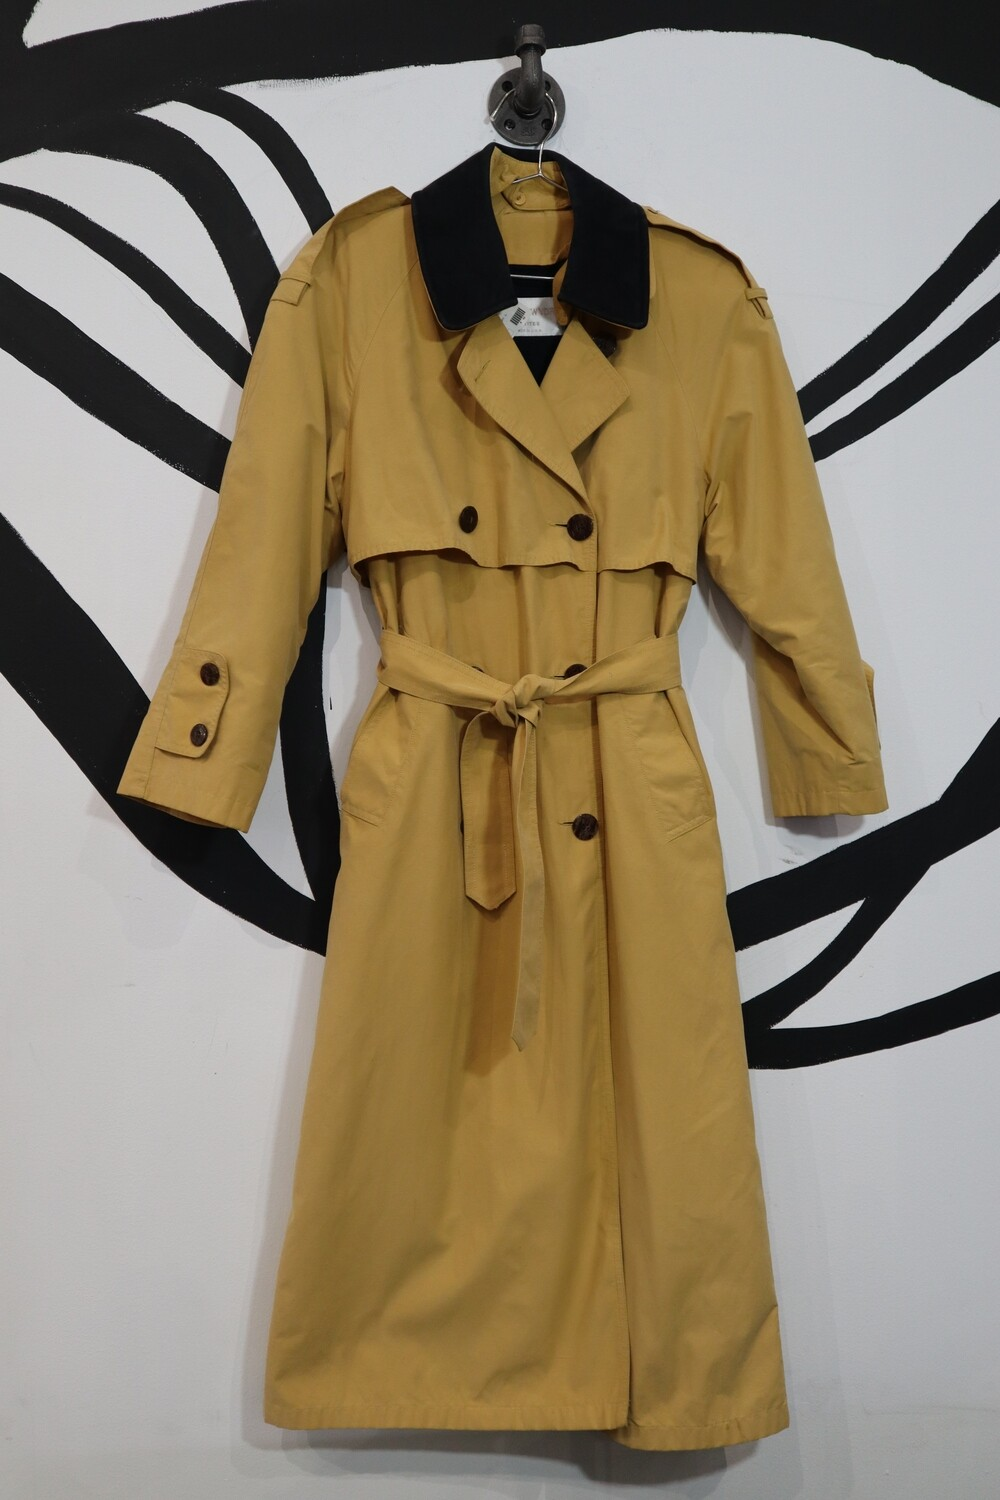 Mustard Trench With Removable Wool Lining - Women's M/L Petite